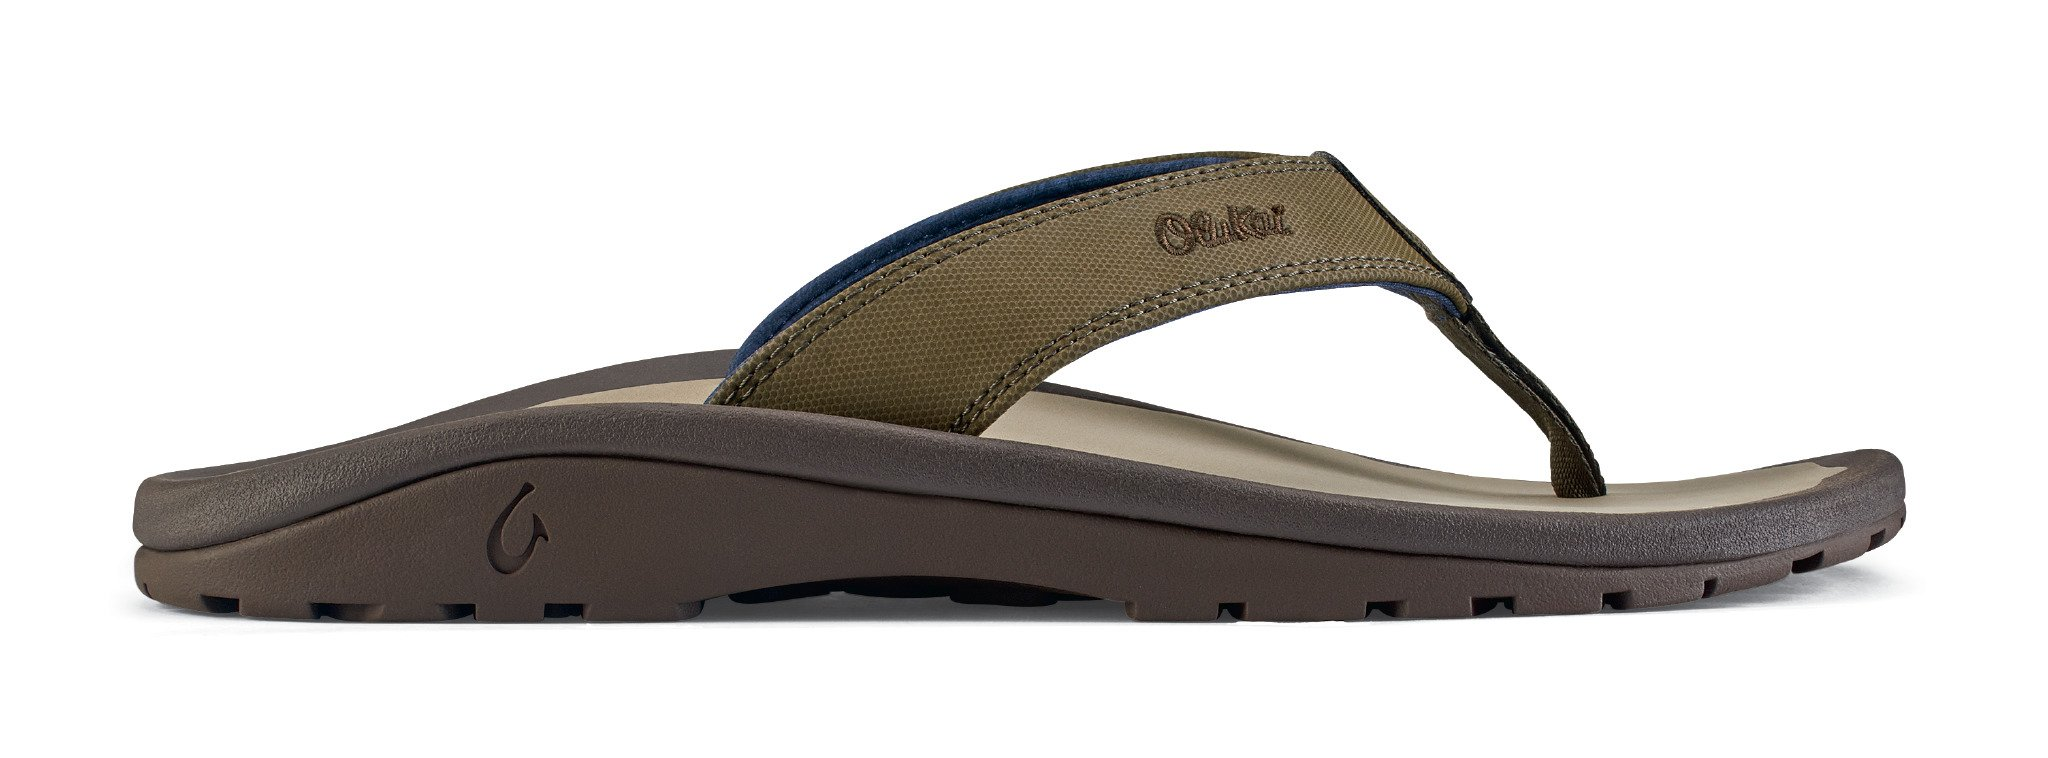 OLUKAI Ohana Sandals - Men's Husk/Clay 11 by OLUKAI